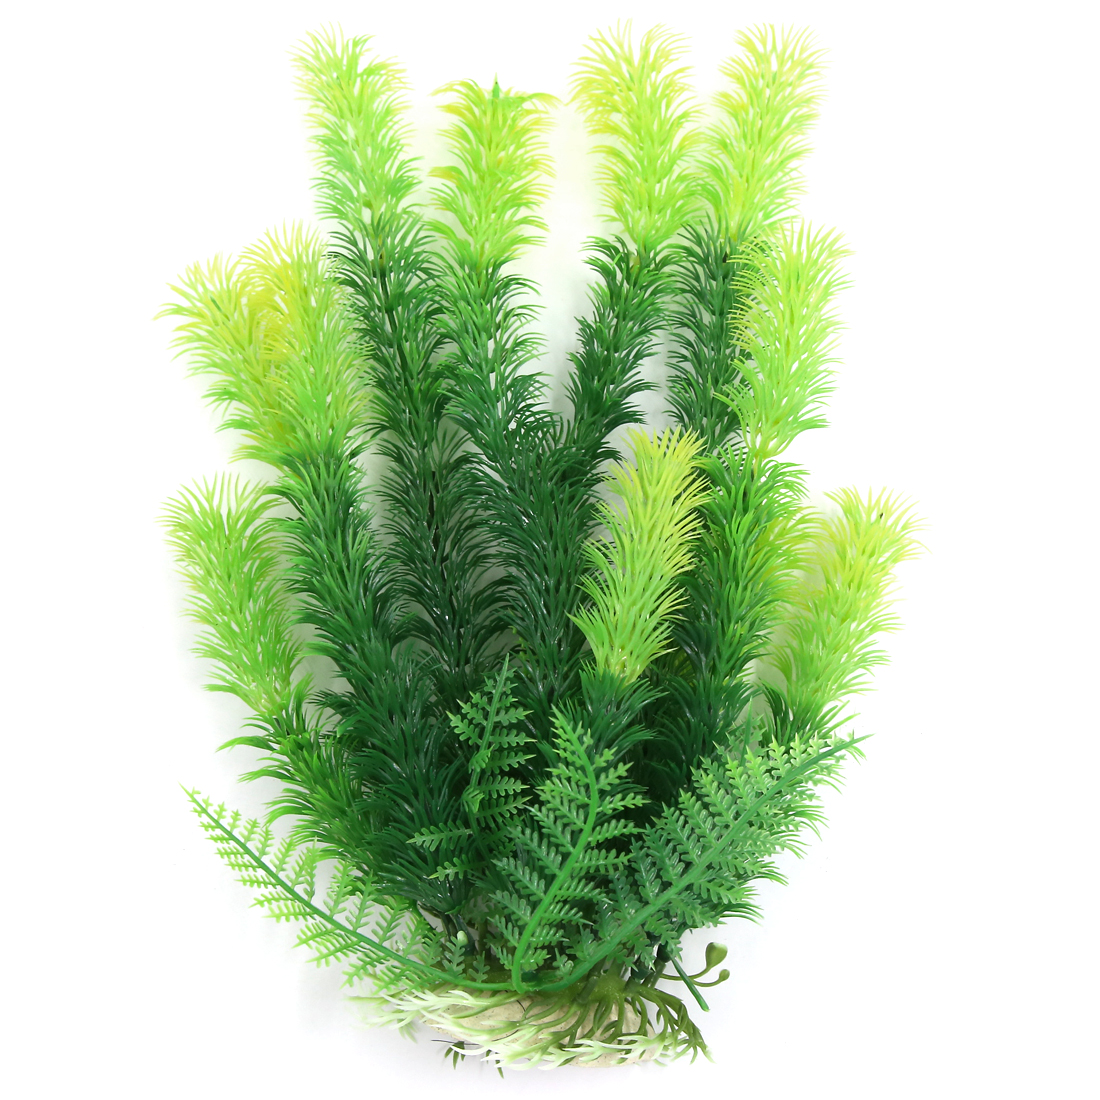 Aqua Landscape Fish Decoration Green Yellow Plastic Plant 27cm